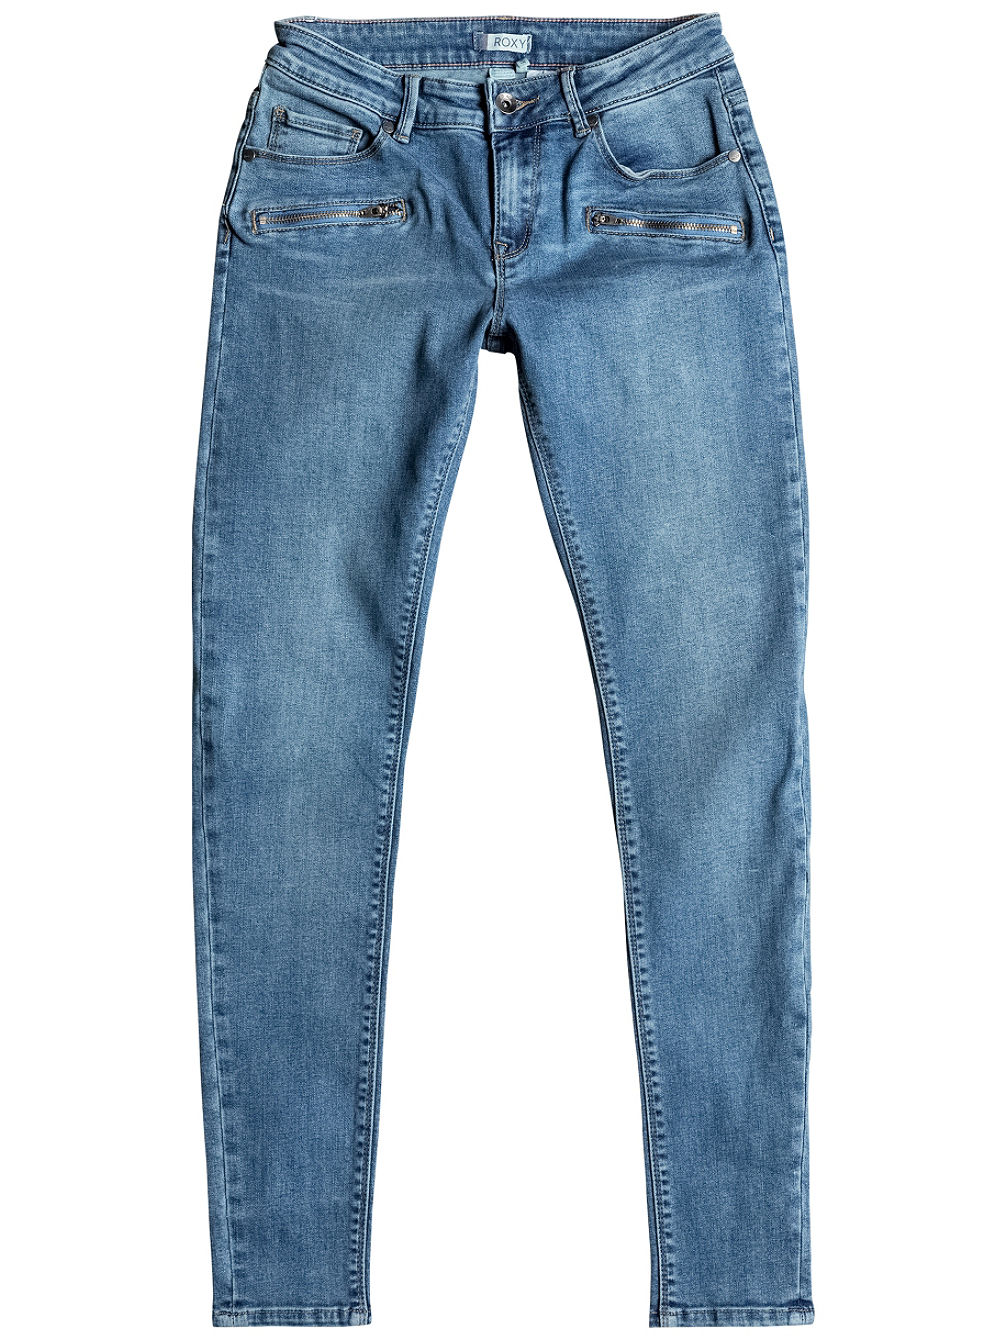 For Cassidy Vintage Jeans